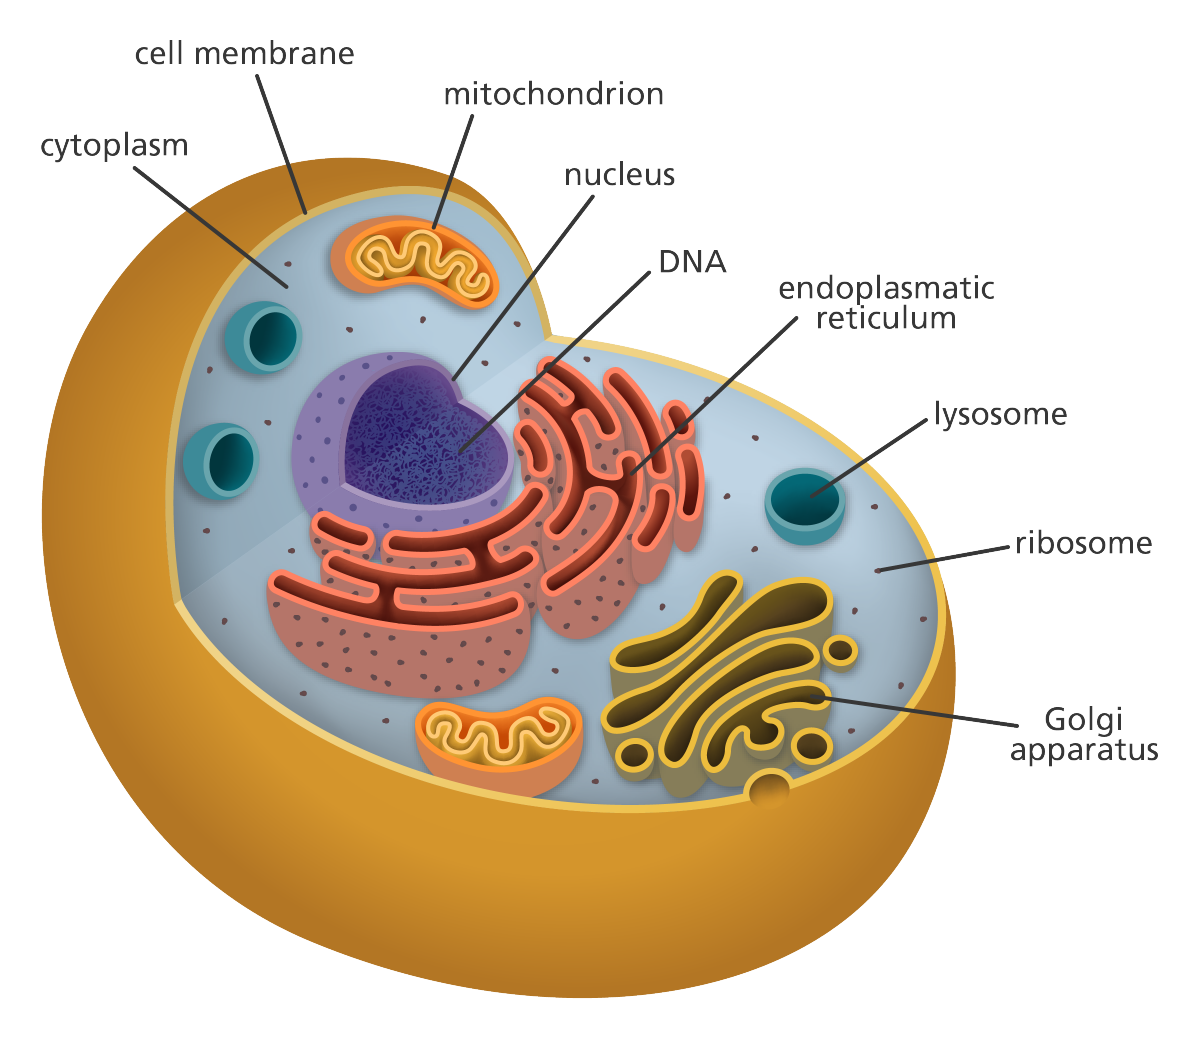 3d animal cell project cell model project animal projects human cell structure  [ 1200 x 1038 Pixel ]